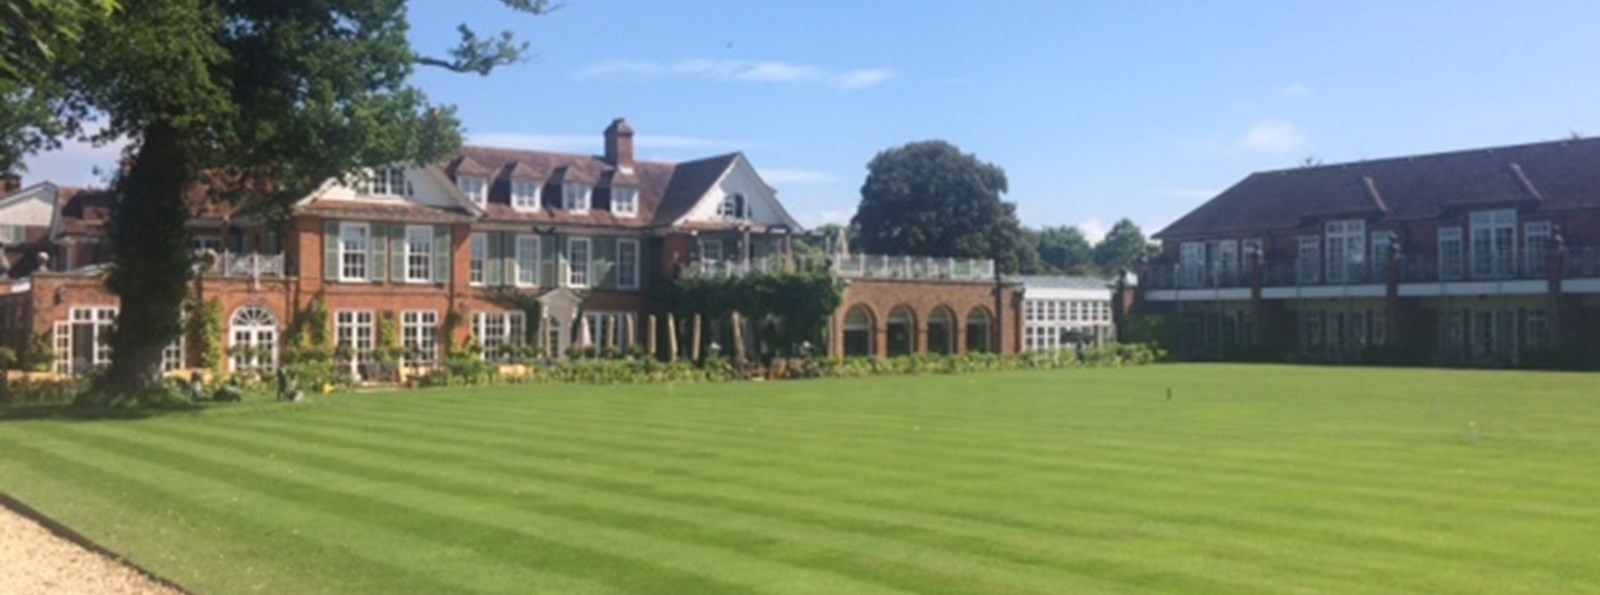 A Jam Packed Day at Chewton Glen